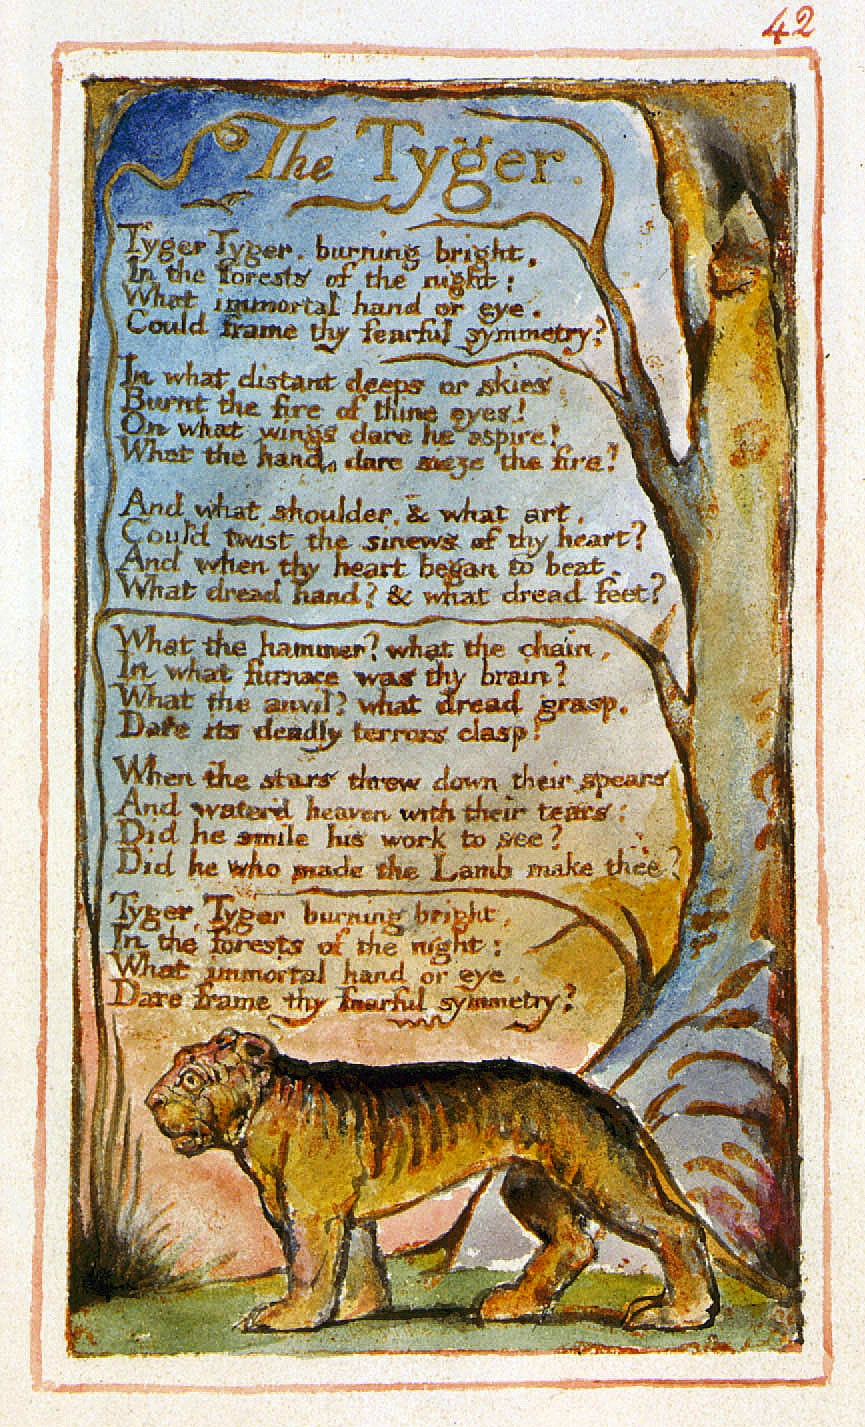 reflections on william blakes the lamb Songs of innocence and of experience study guide contains a biography of william blake, literature essays, a complete e-text, quiz questions songs of innocence and of experience summary and analysis of the little black boy the lamb songs of innocence: the little black boy.